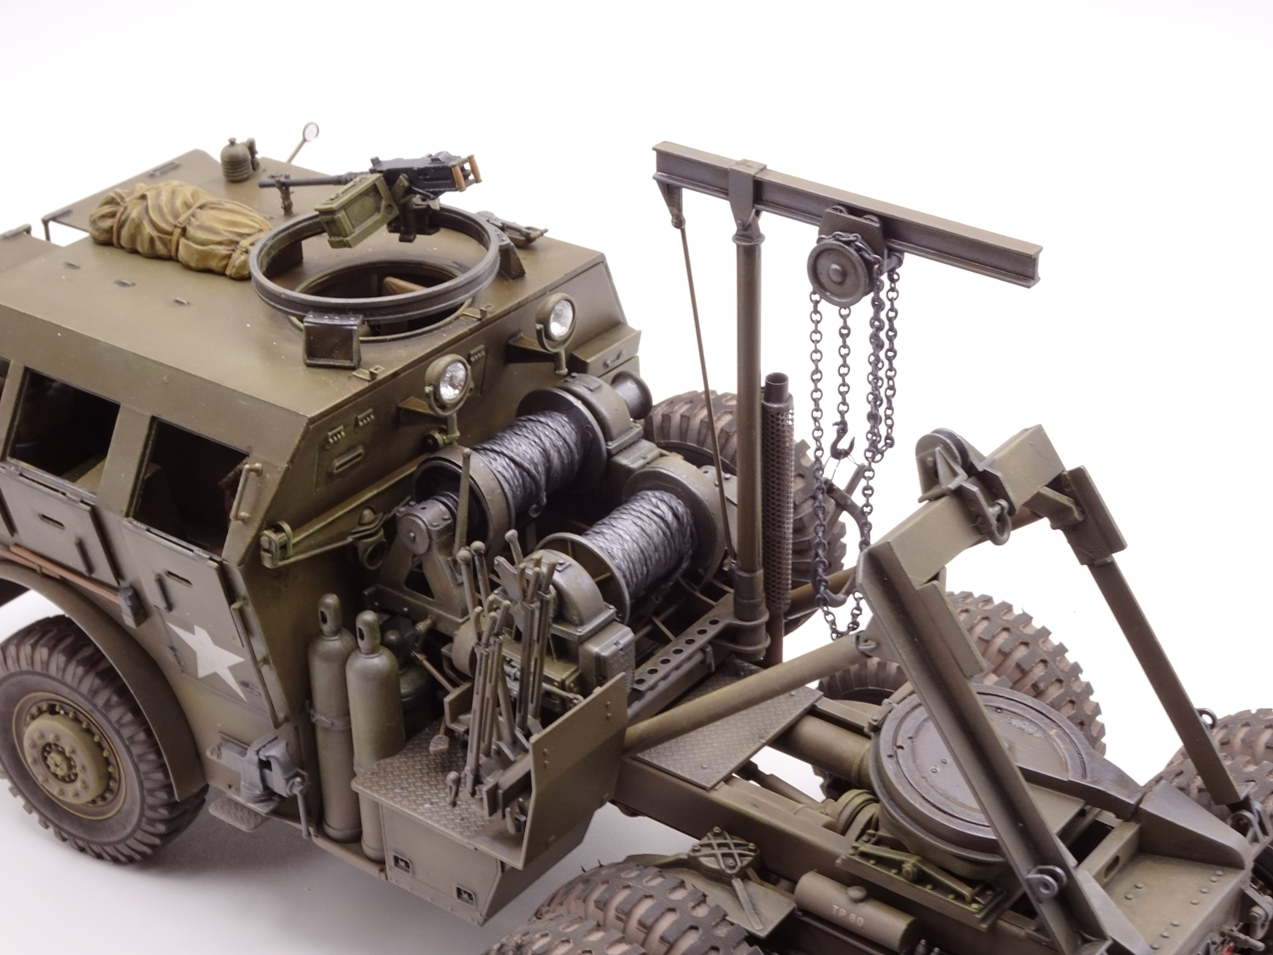 [Tamiya 1/35] M26 Armored tank recovery vehicle réf. 35244 - Page 4 M26-fin-9